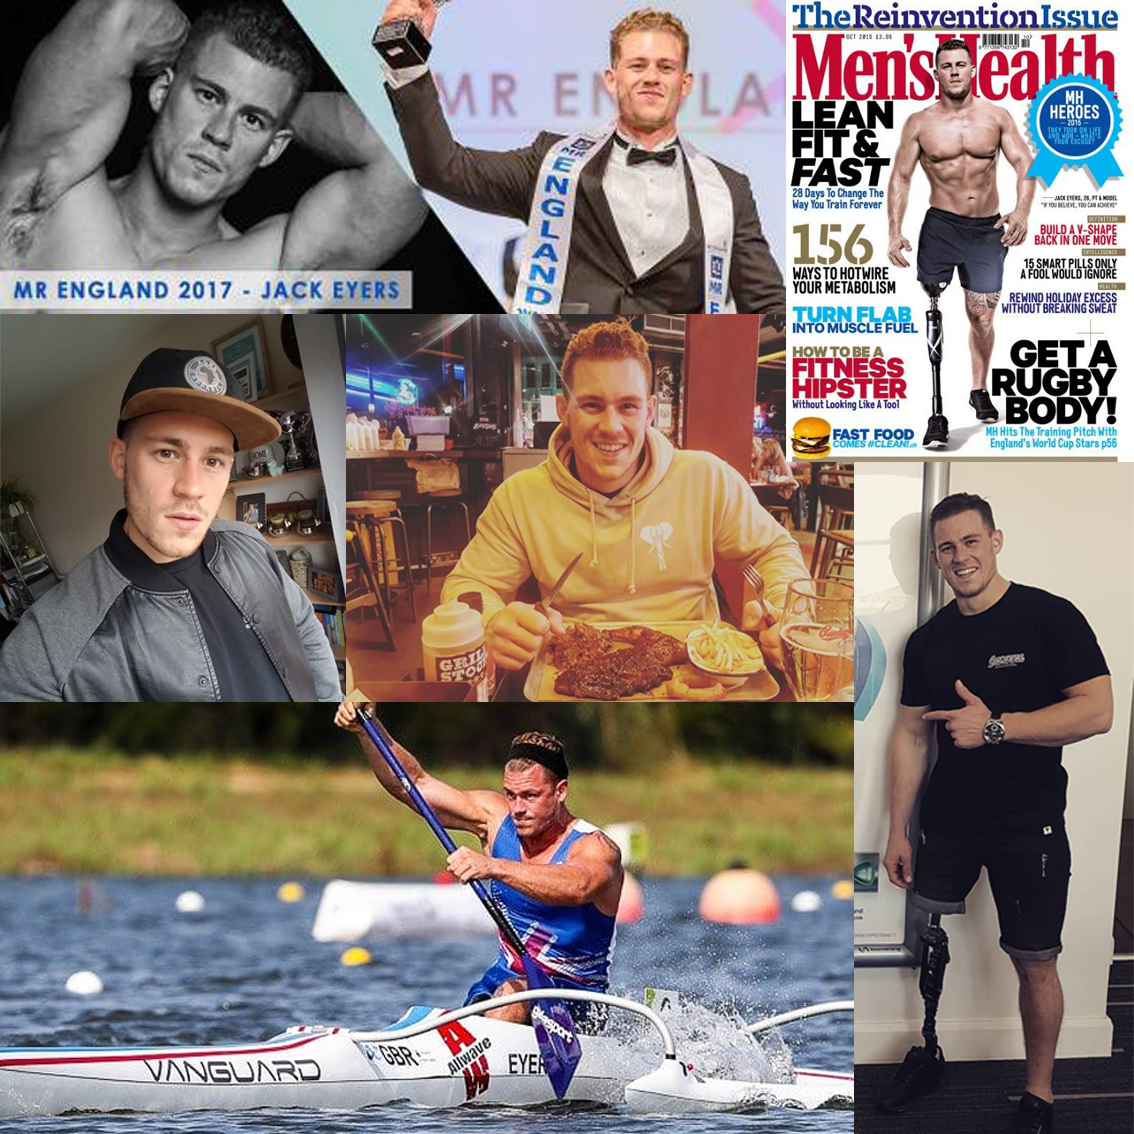 Jack Eyers - Team GB Para-canoe Athlete & Mr England 2017   Following an issue with his leg, Jack needed an amputation. Despite this he has gone on to achieve great things and help others going through struggles of their own. He has gone on to do professional modelling, film work, personal training, appear on the Ninja Warrior TV show, be selected to represent GB in the para-canoe world championships, compete in pageants and hold the title of Mr England!  We're proud Jack's representing Ages Apparel!  Learn more about Jack here >   BBC's Amazing Humans